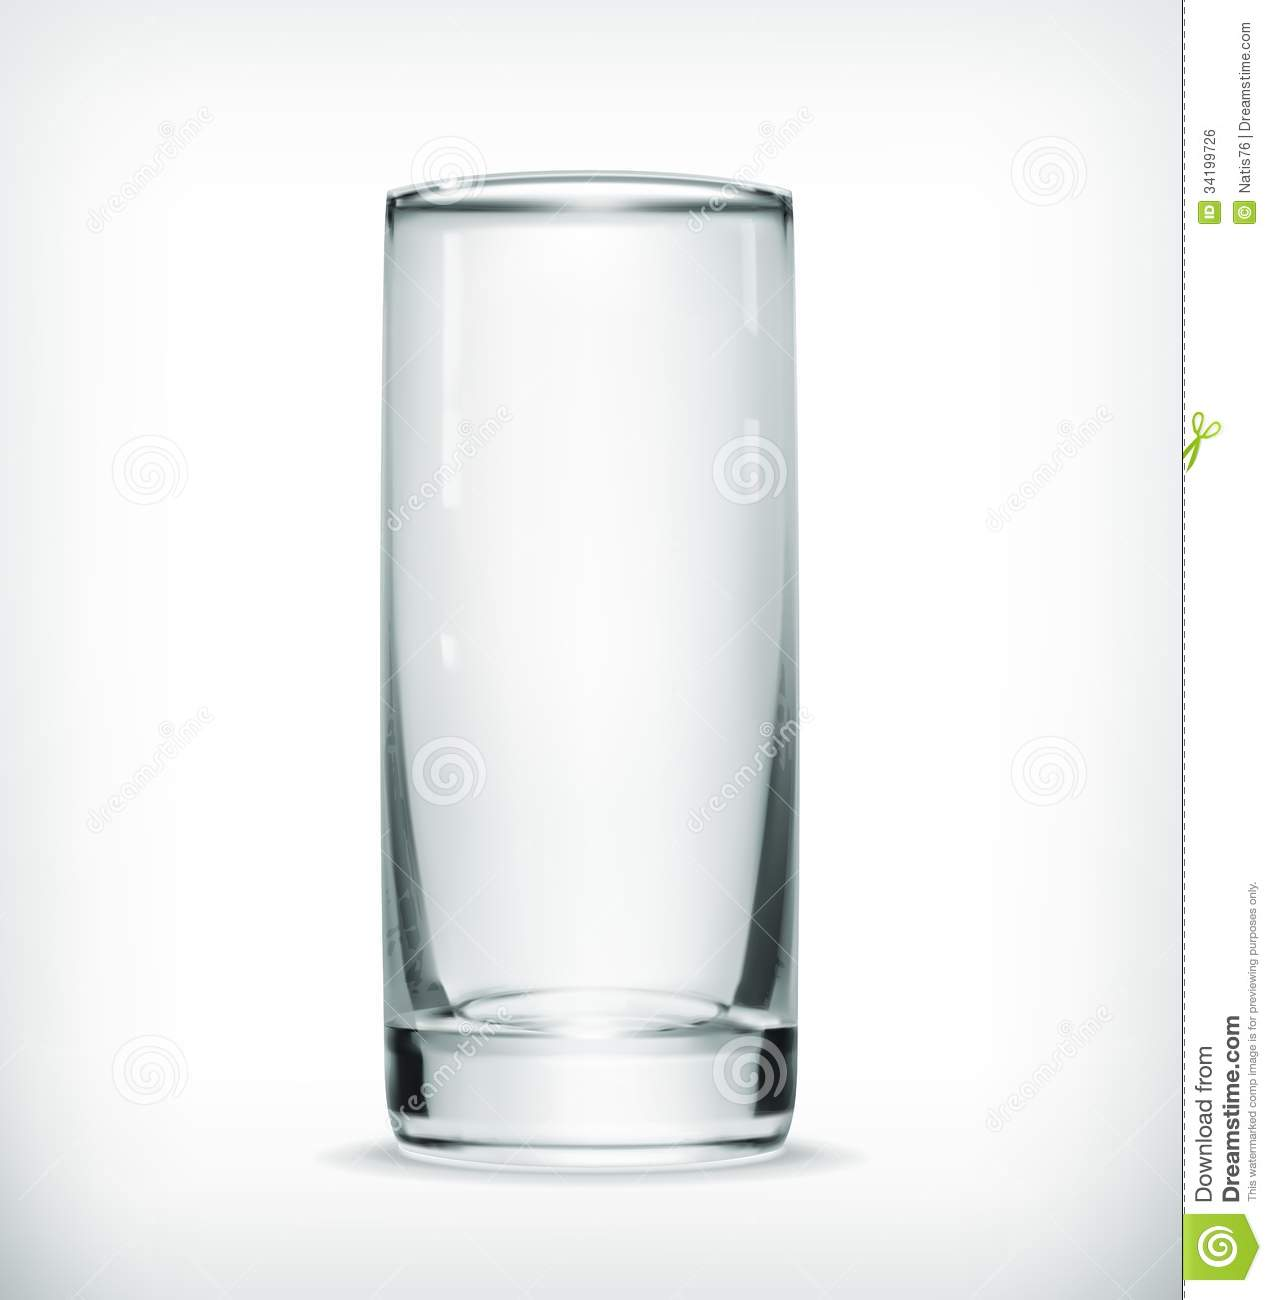 Empty glass, computer illustration on white background.